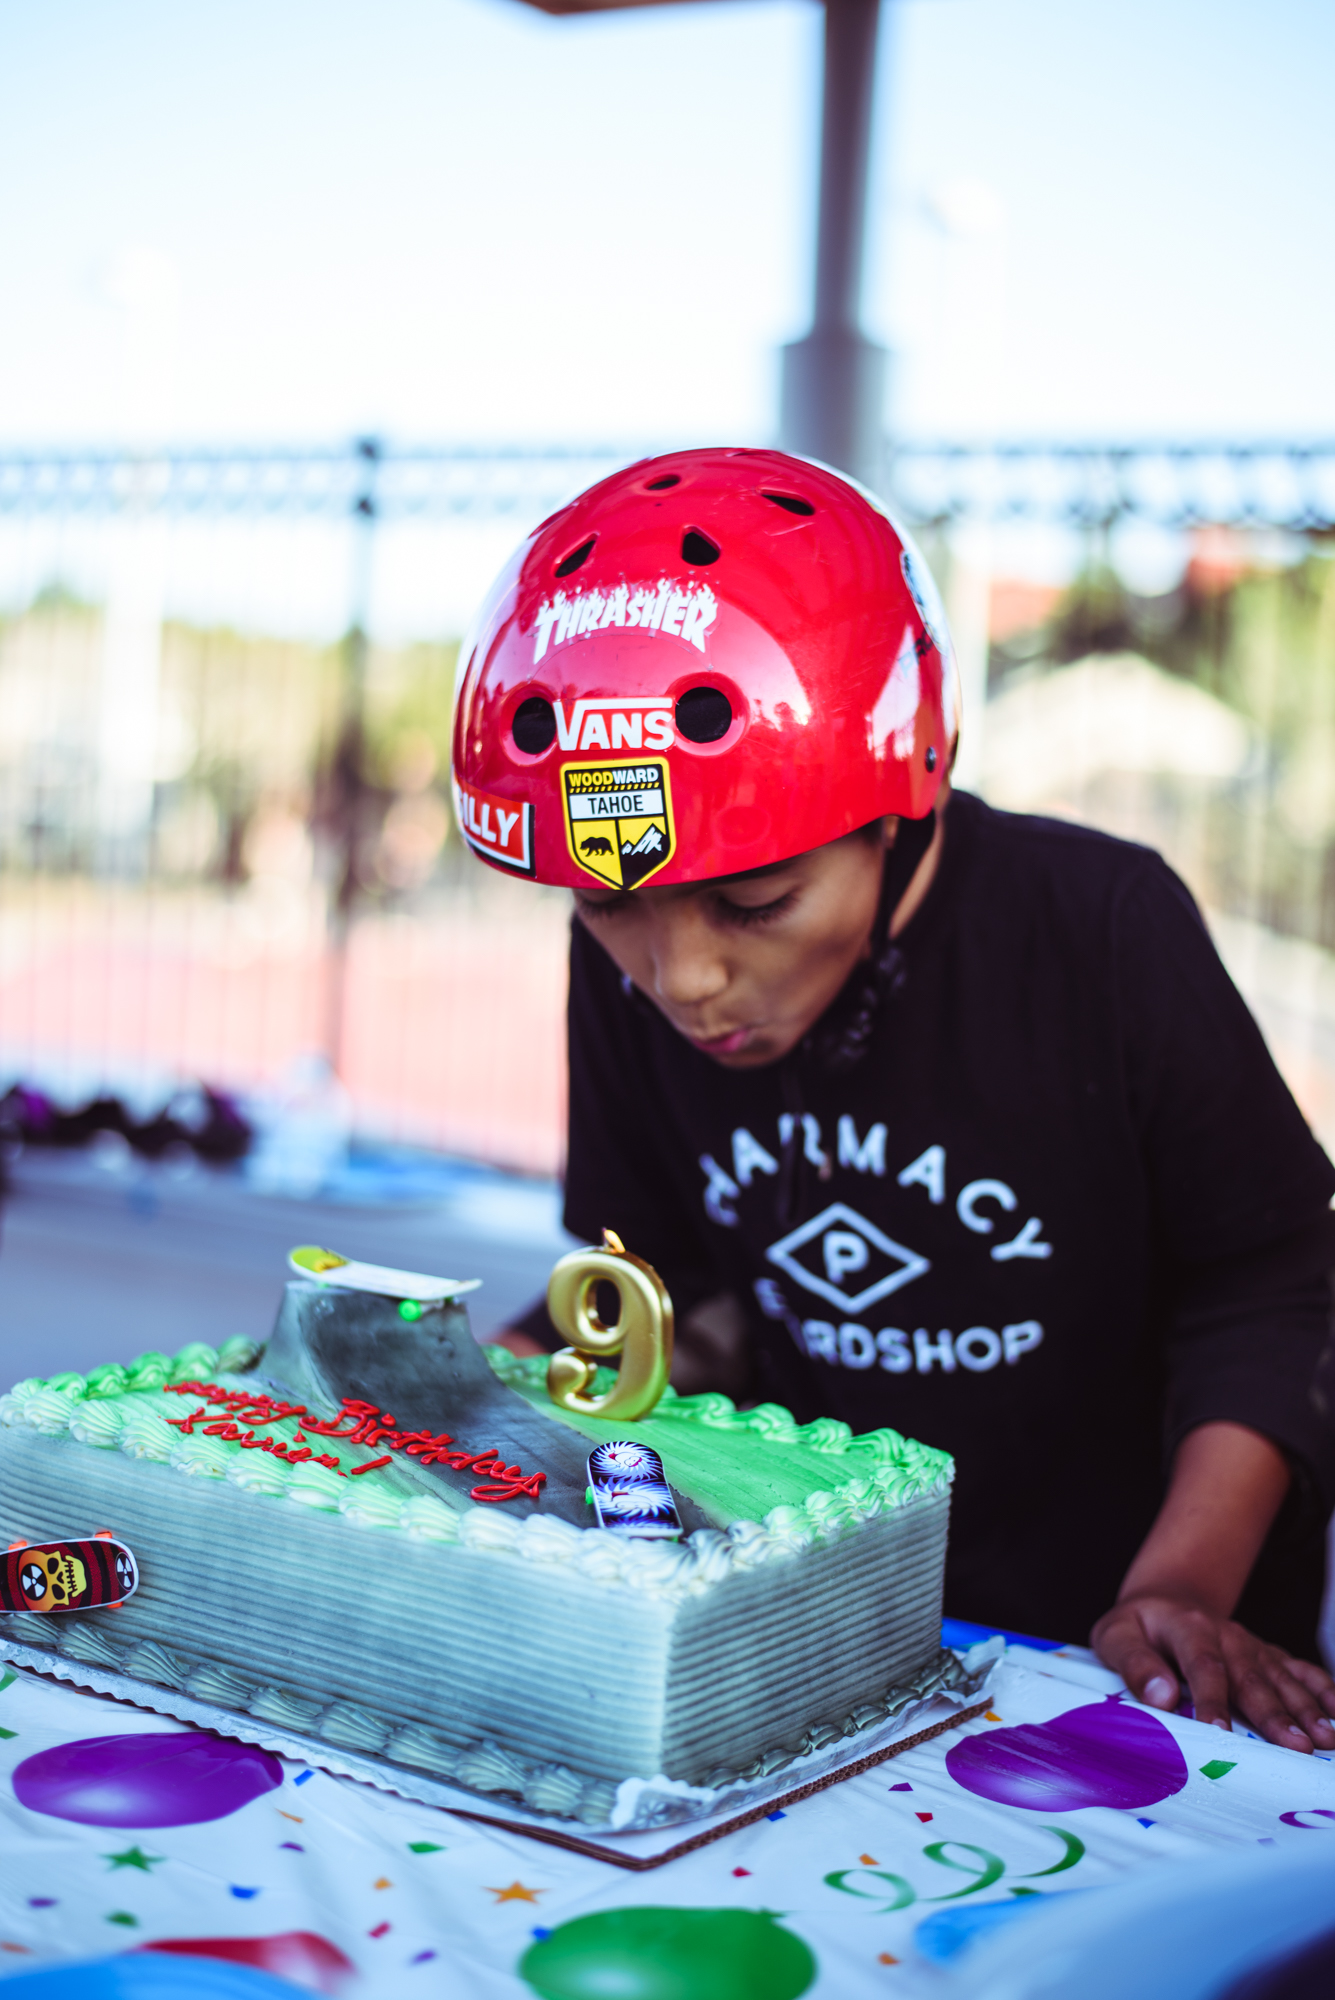 Skateboard Birthday Party-42.jpg